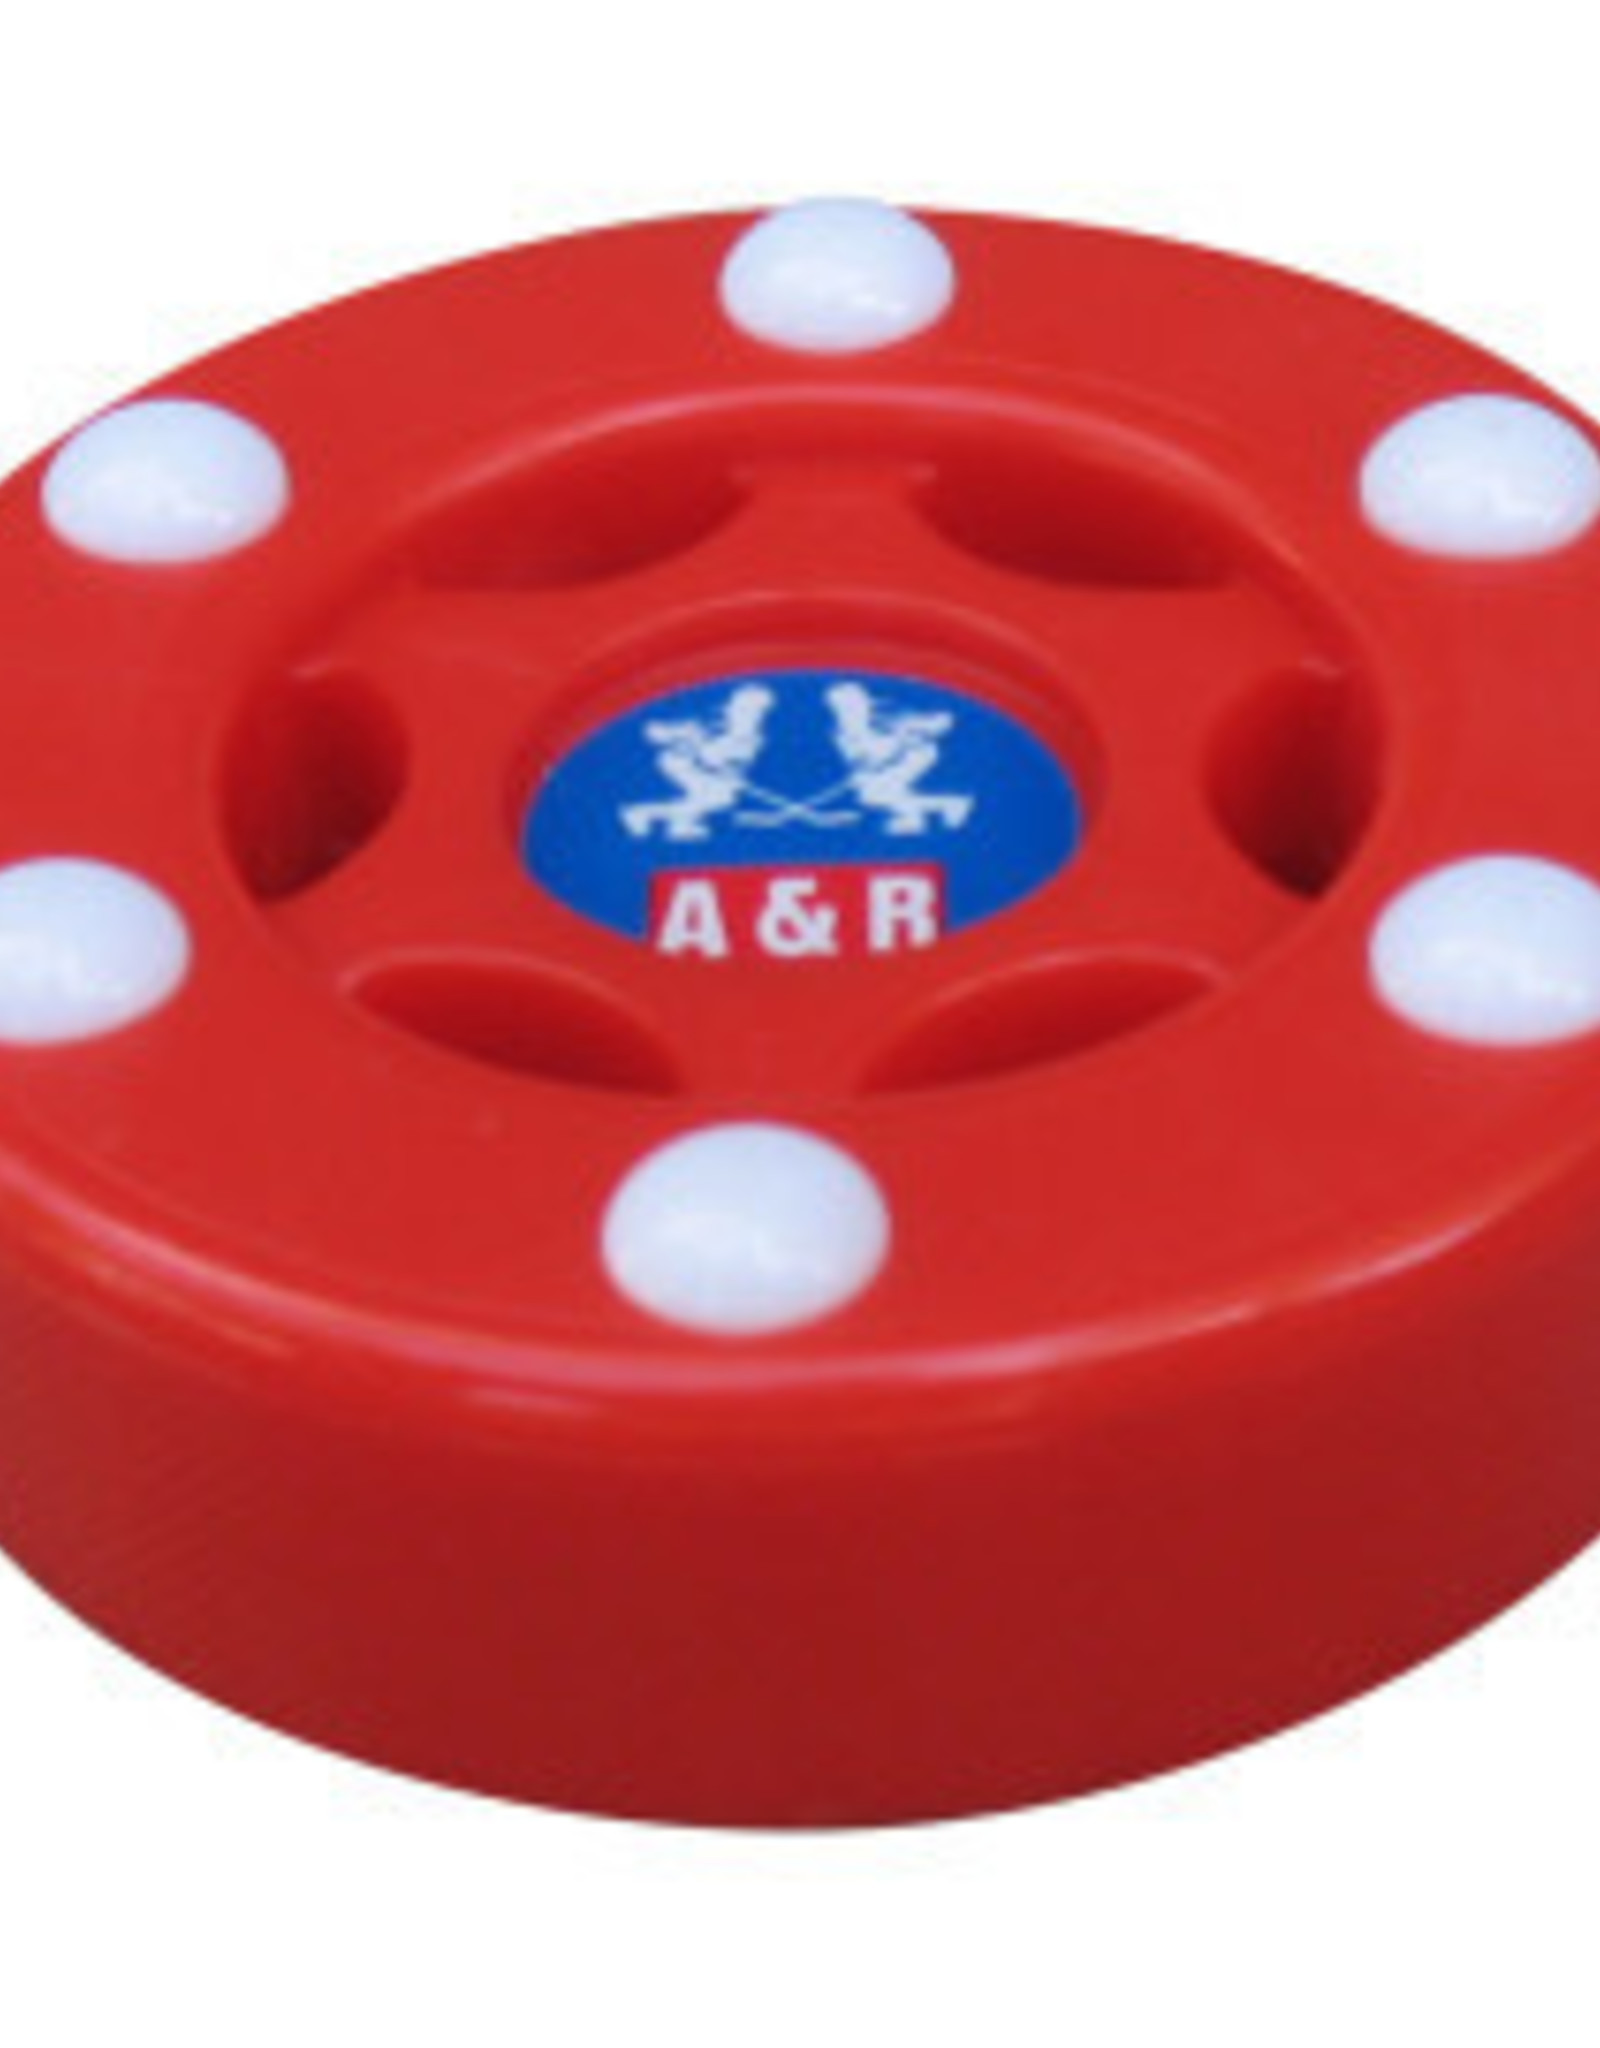 A&R A&R Street Hockey Puck